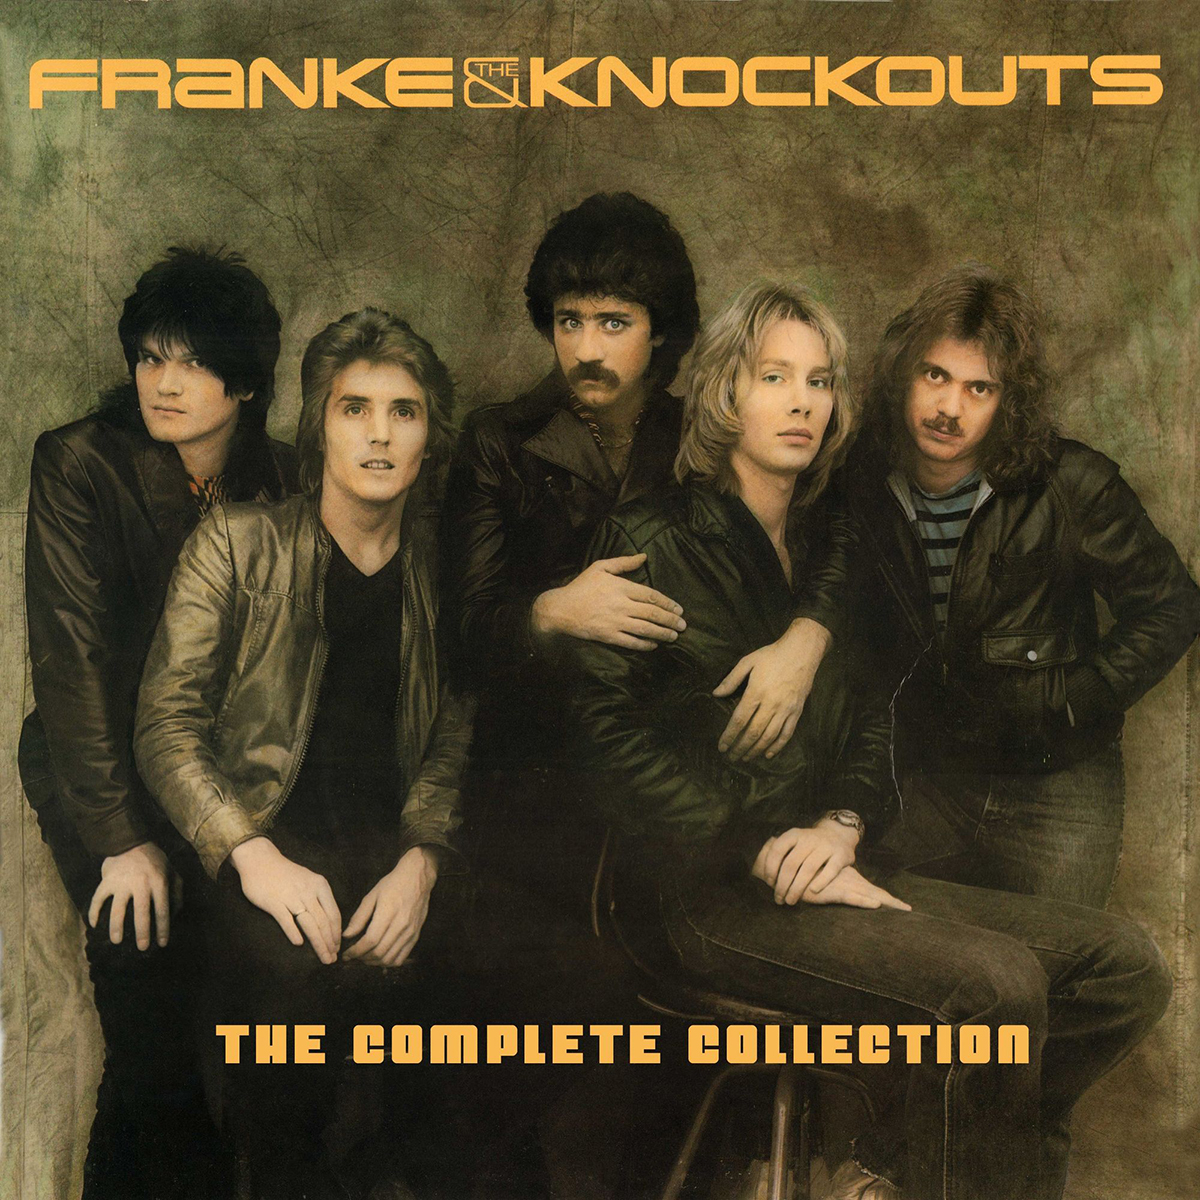 Franke & The Knockouts - The Complete Collection (Original Recordings Remastered/Limited Edition) CD